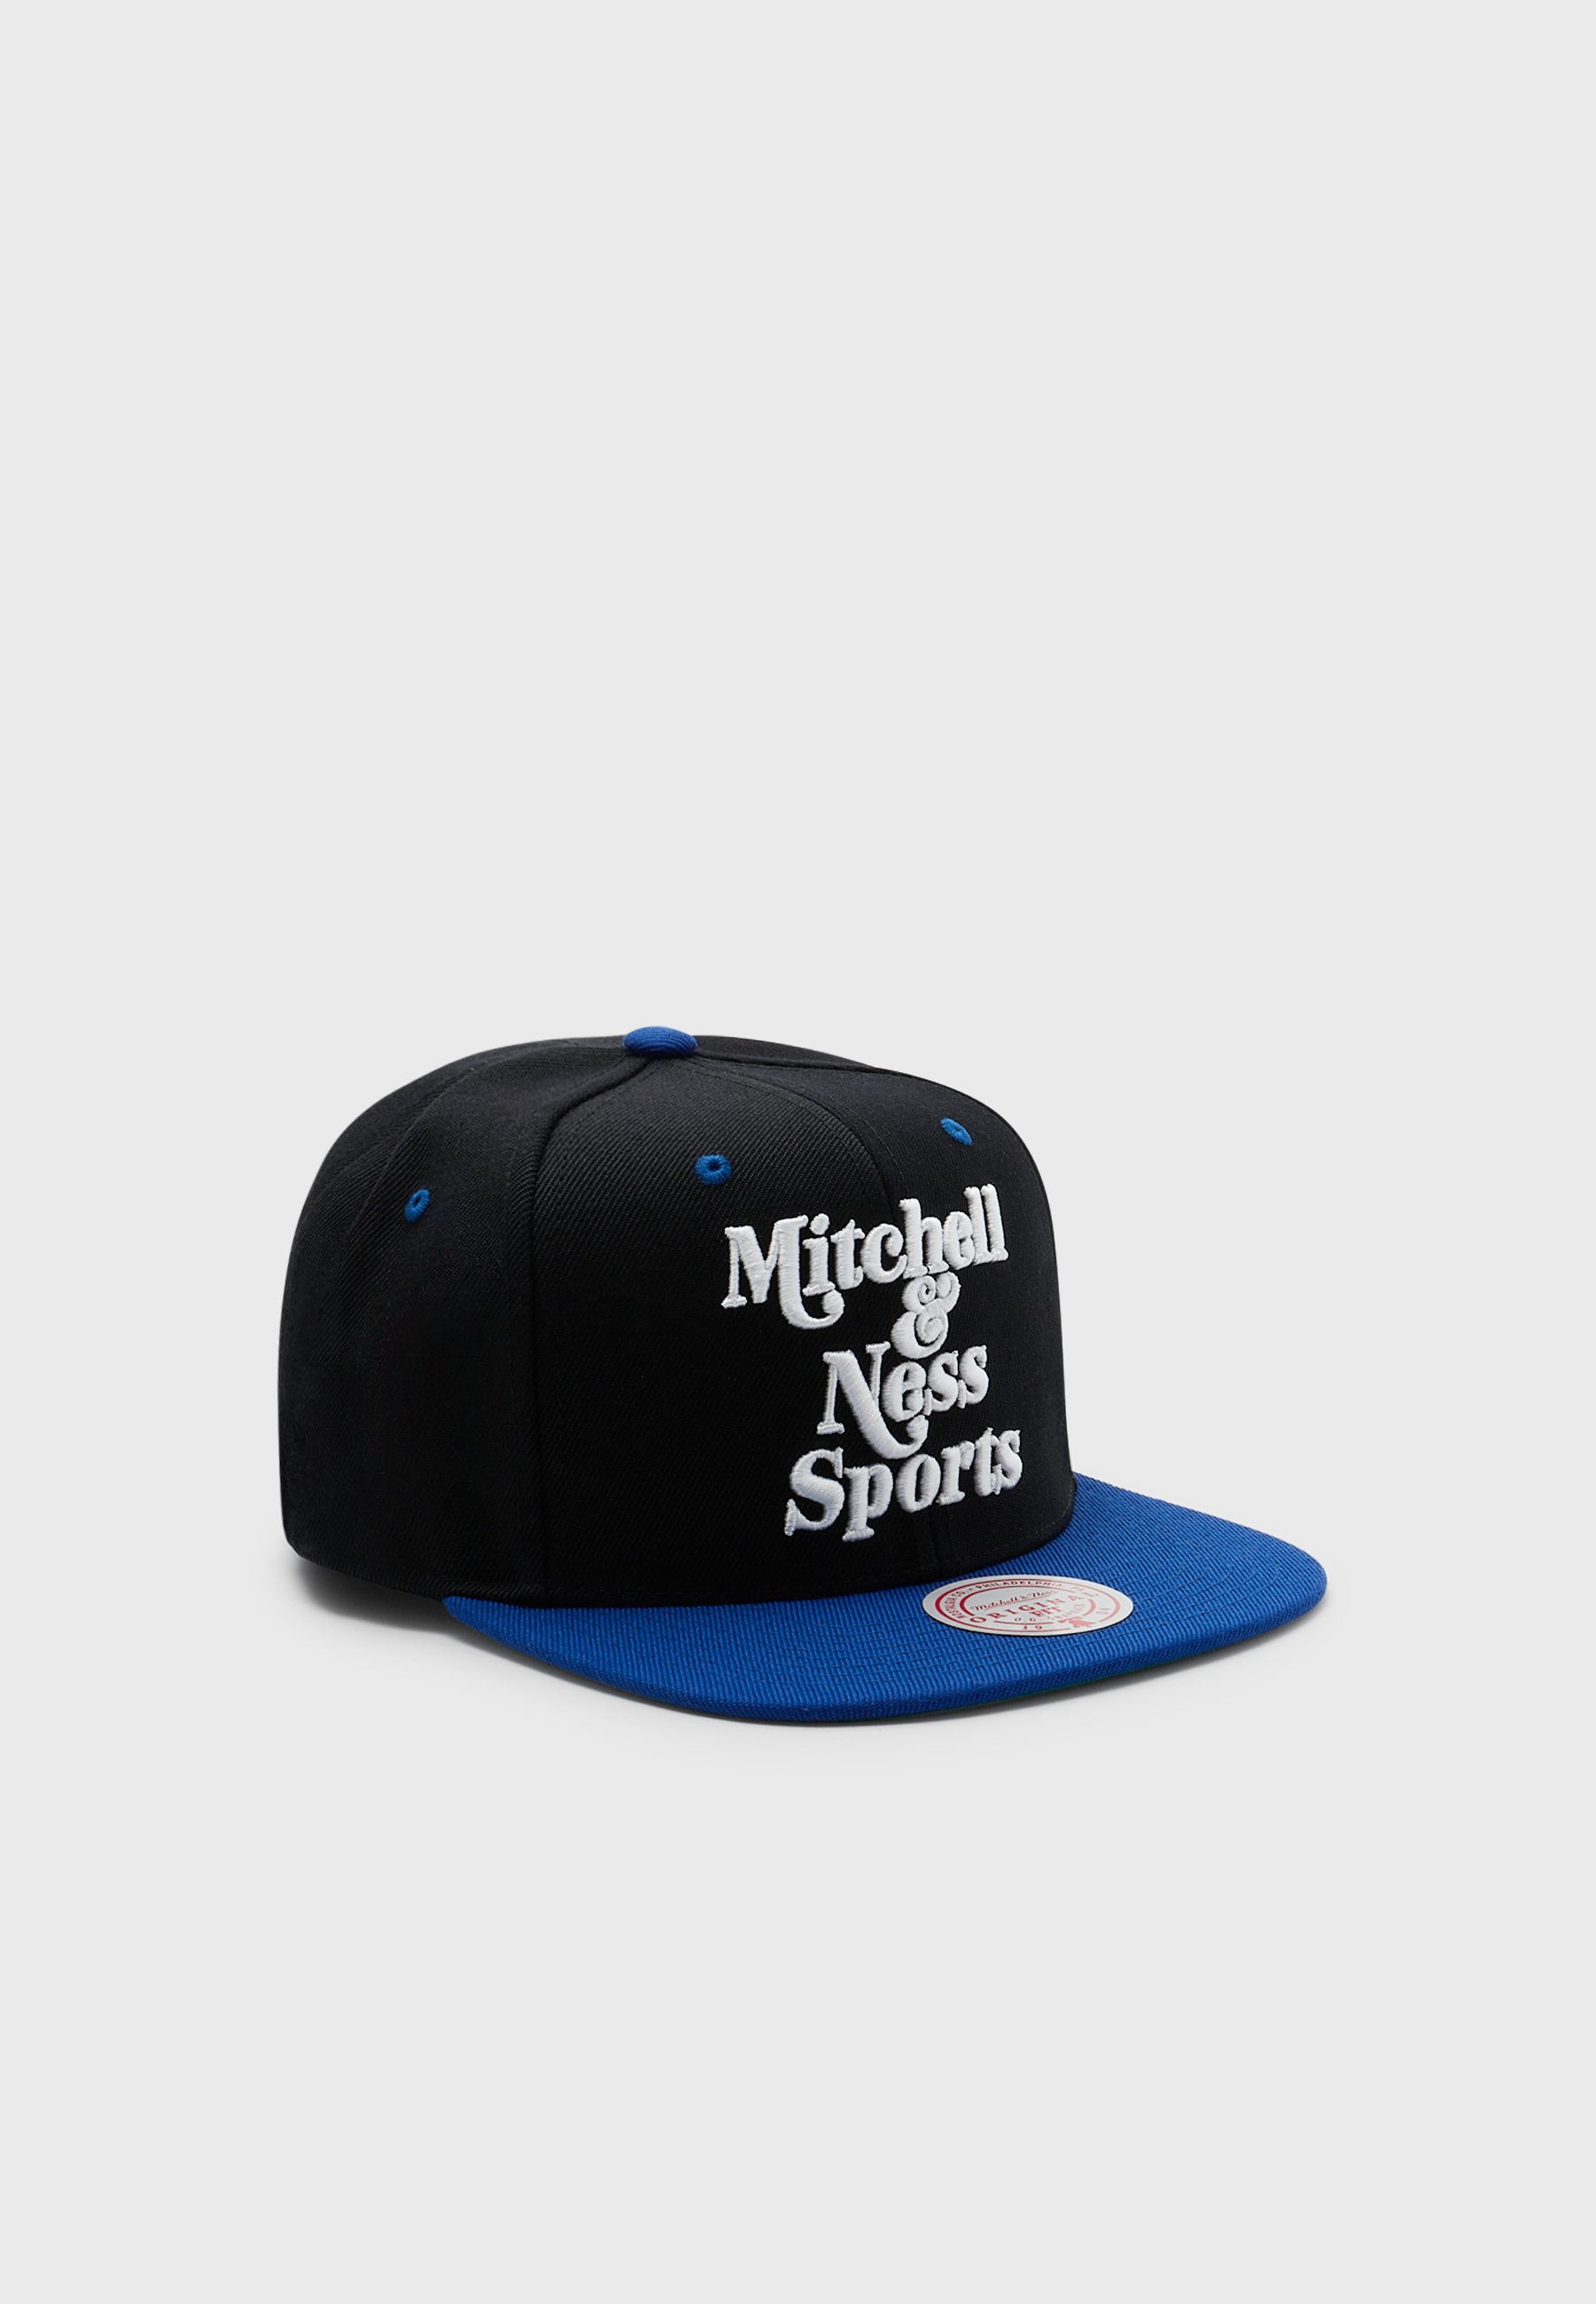 Homme MITCHELL&NESS BRANDED TWO TONE RETRO SNAPBACK - Casquette